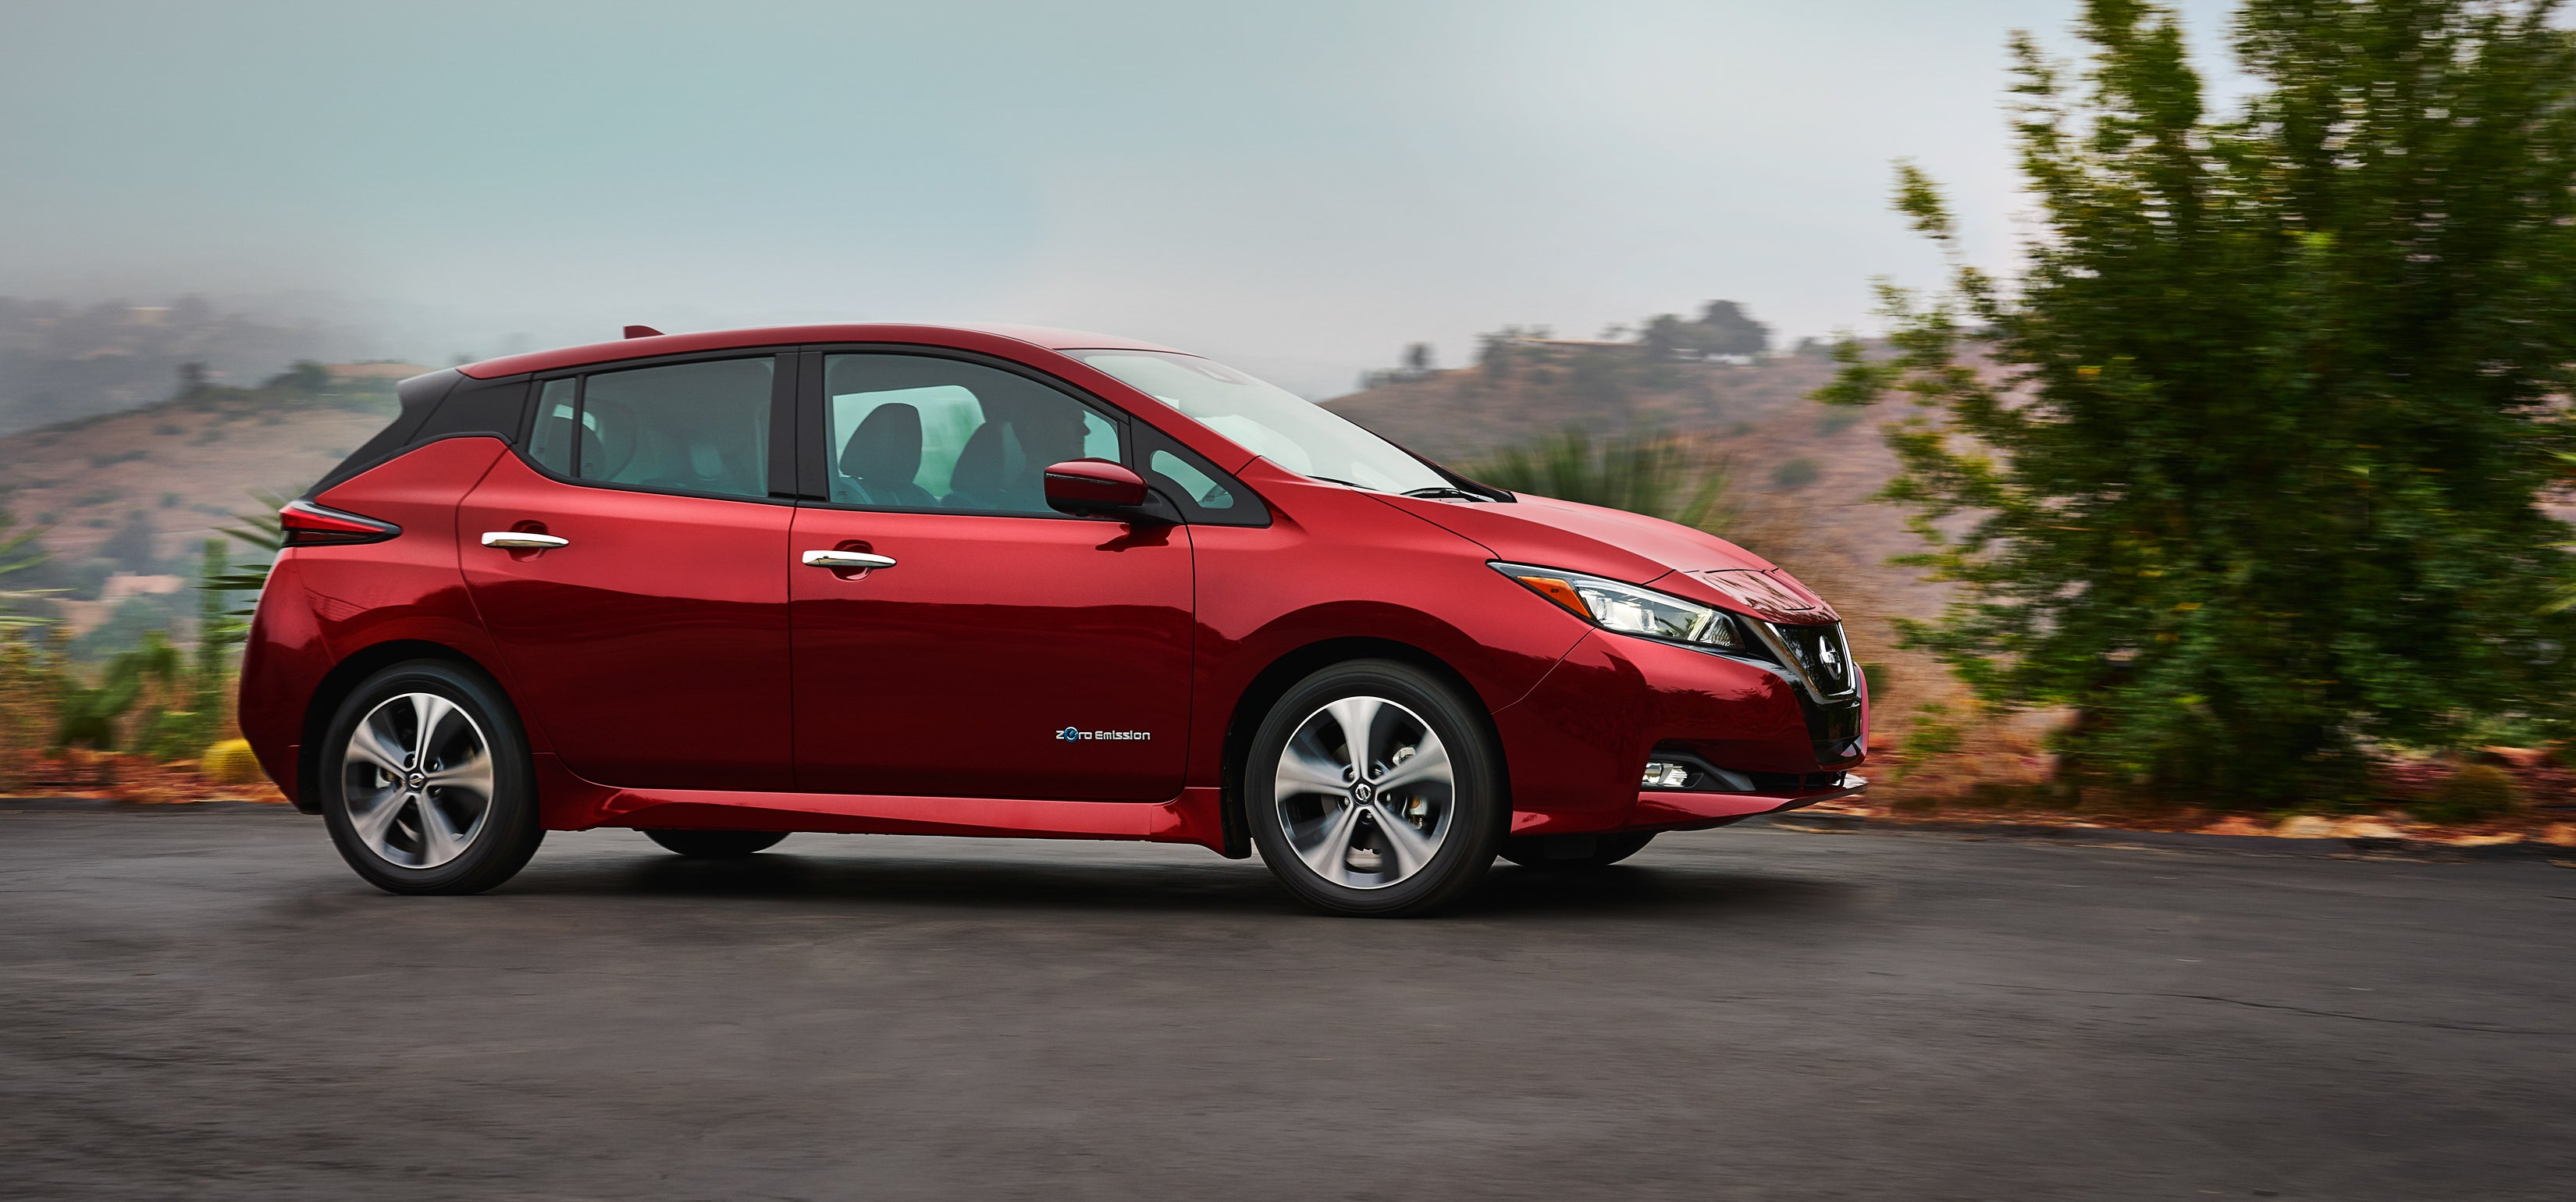 use nasa test car ames driverless space technology nissan nissanleaf up for in visit feature cars drives image close